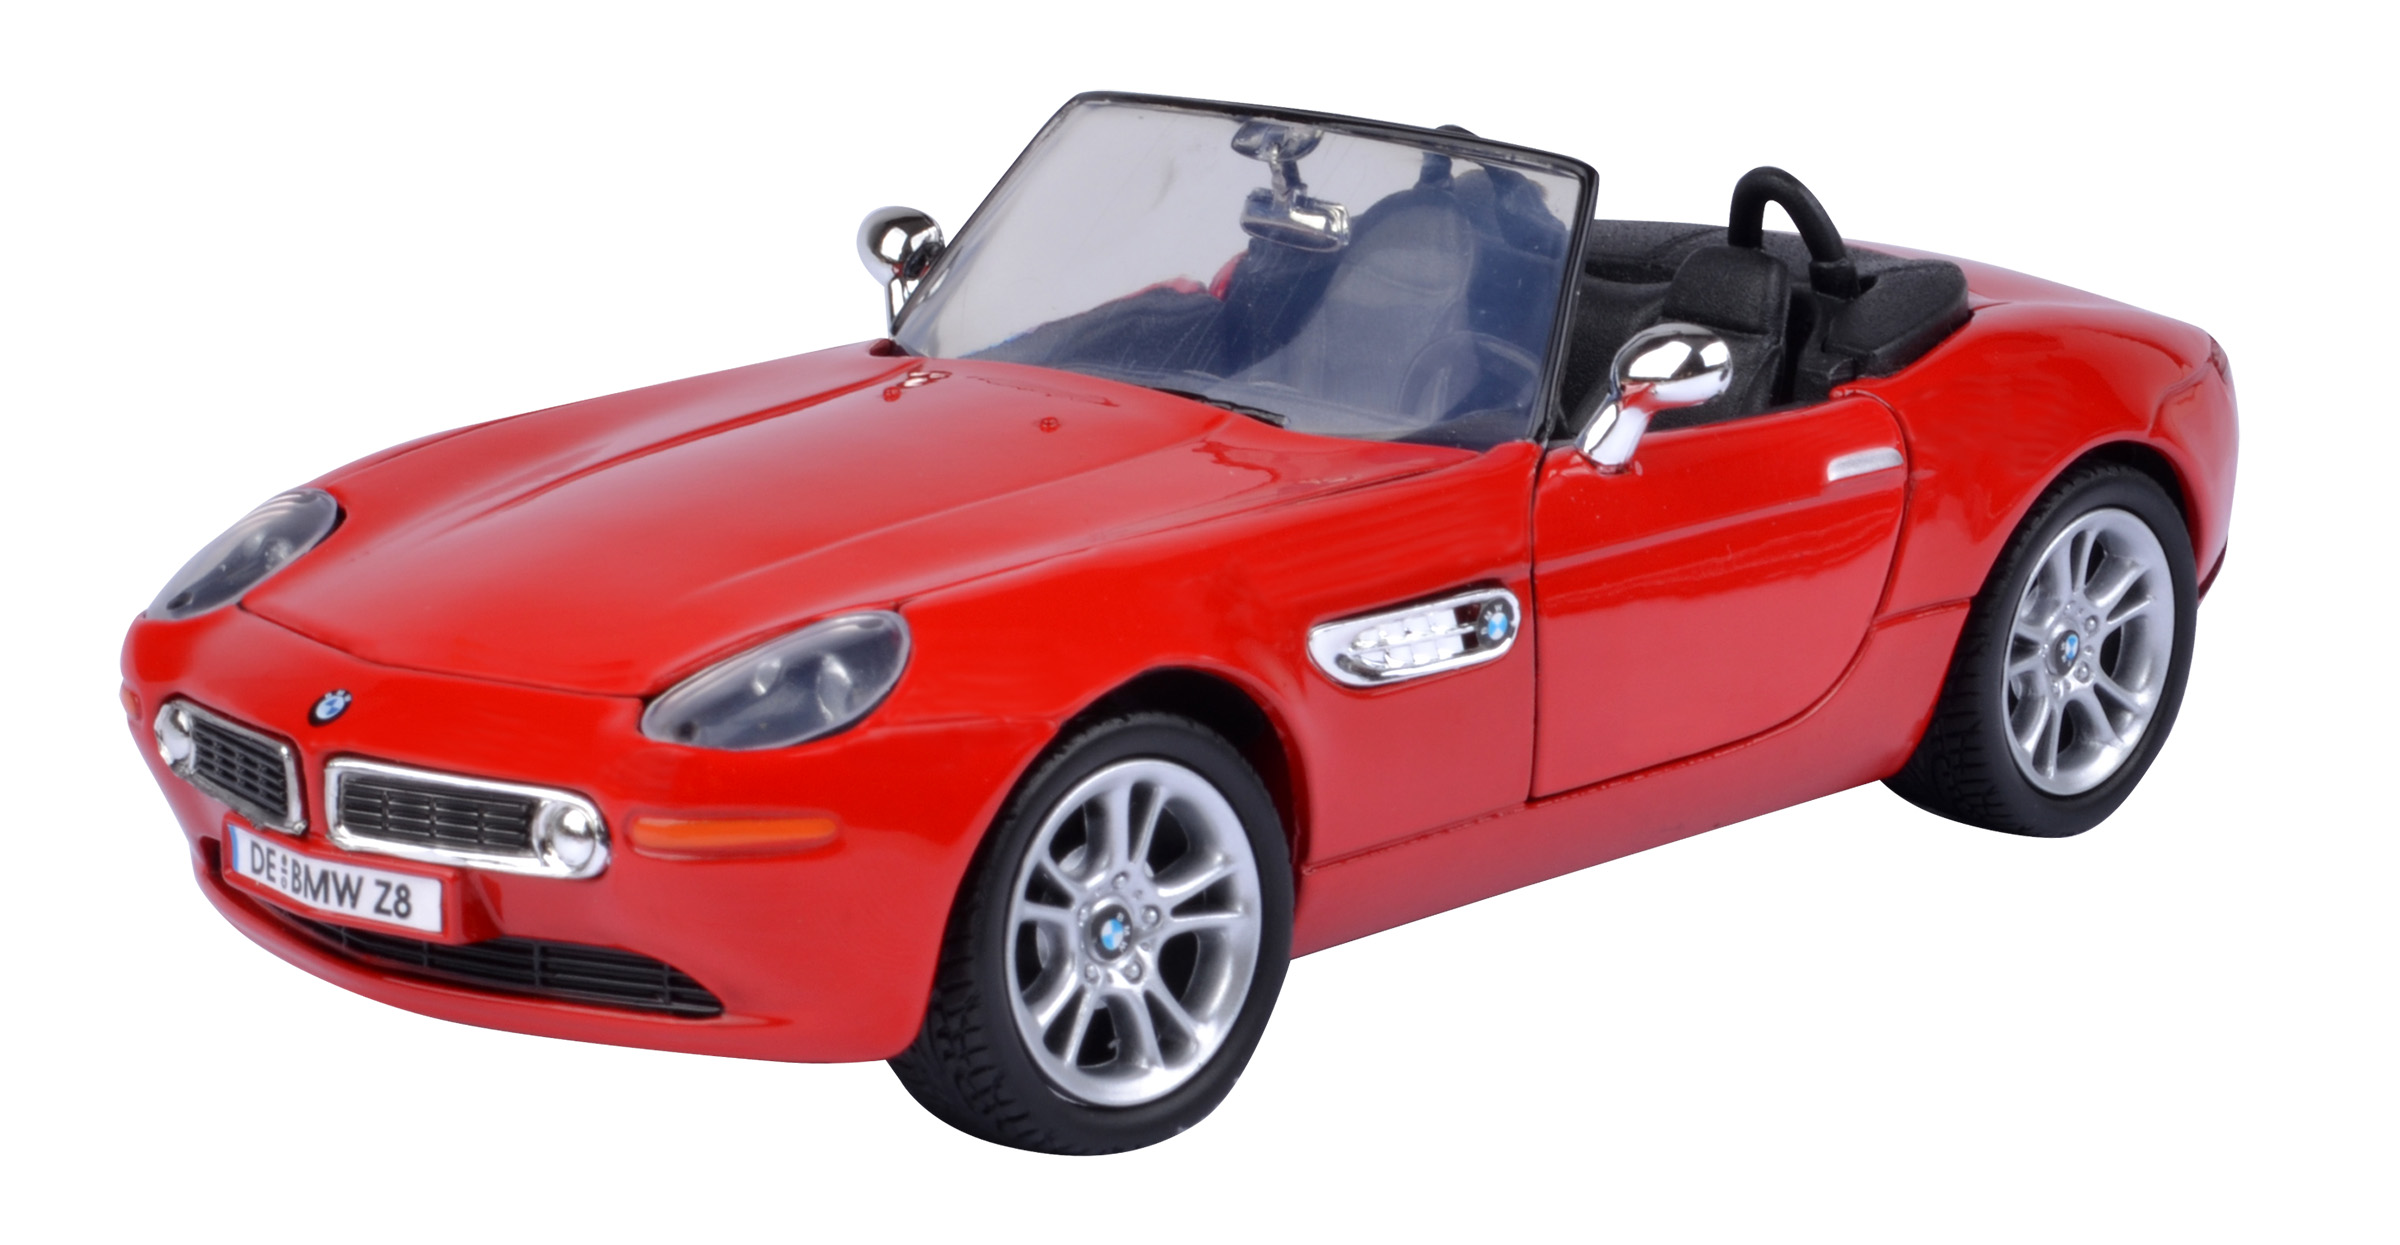 73257RD    BMW Z8 Roadster, rood, Motor Max